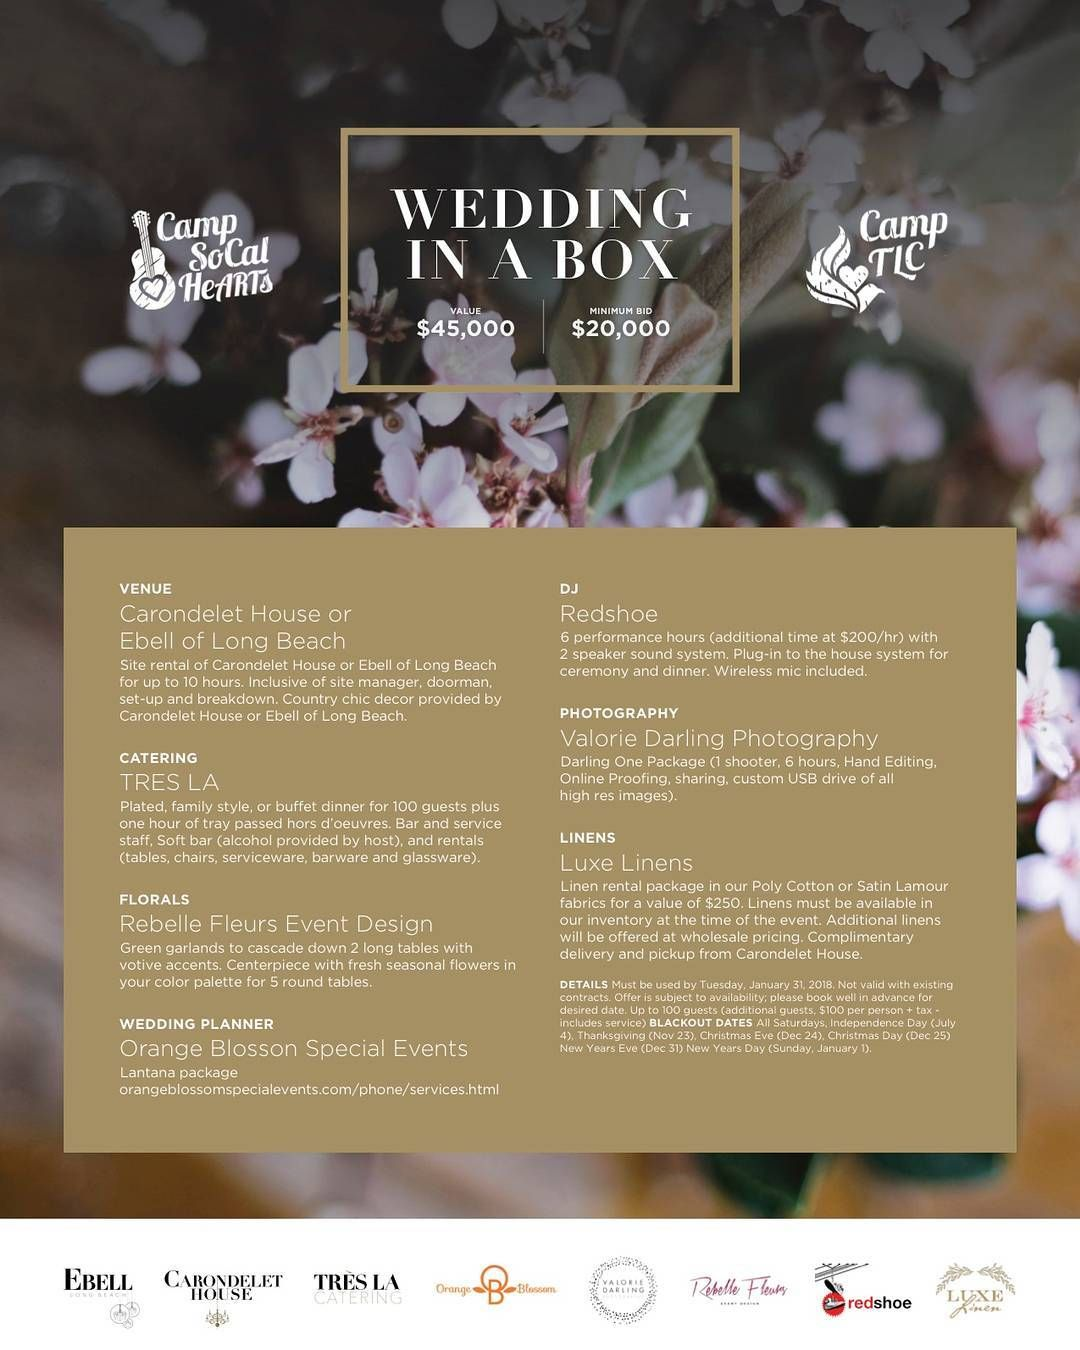 Wedding decorations with lights november 2018 Recently engaged Donut miss this amazing opportunity to win an